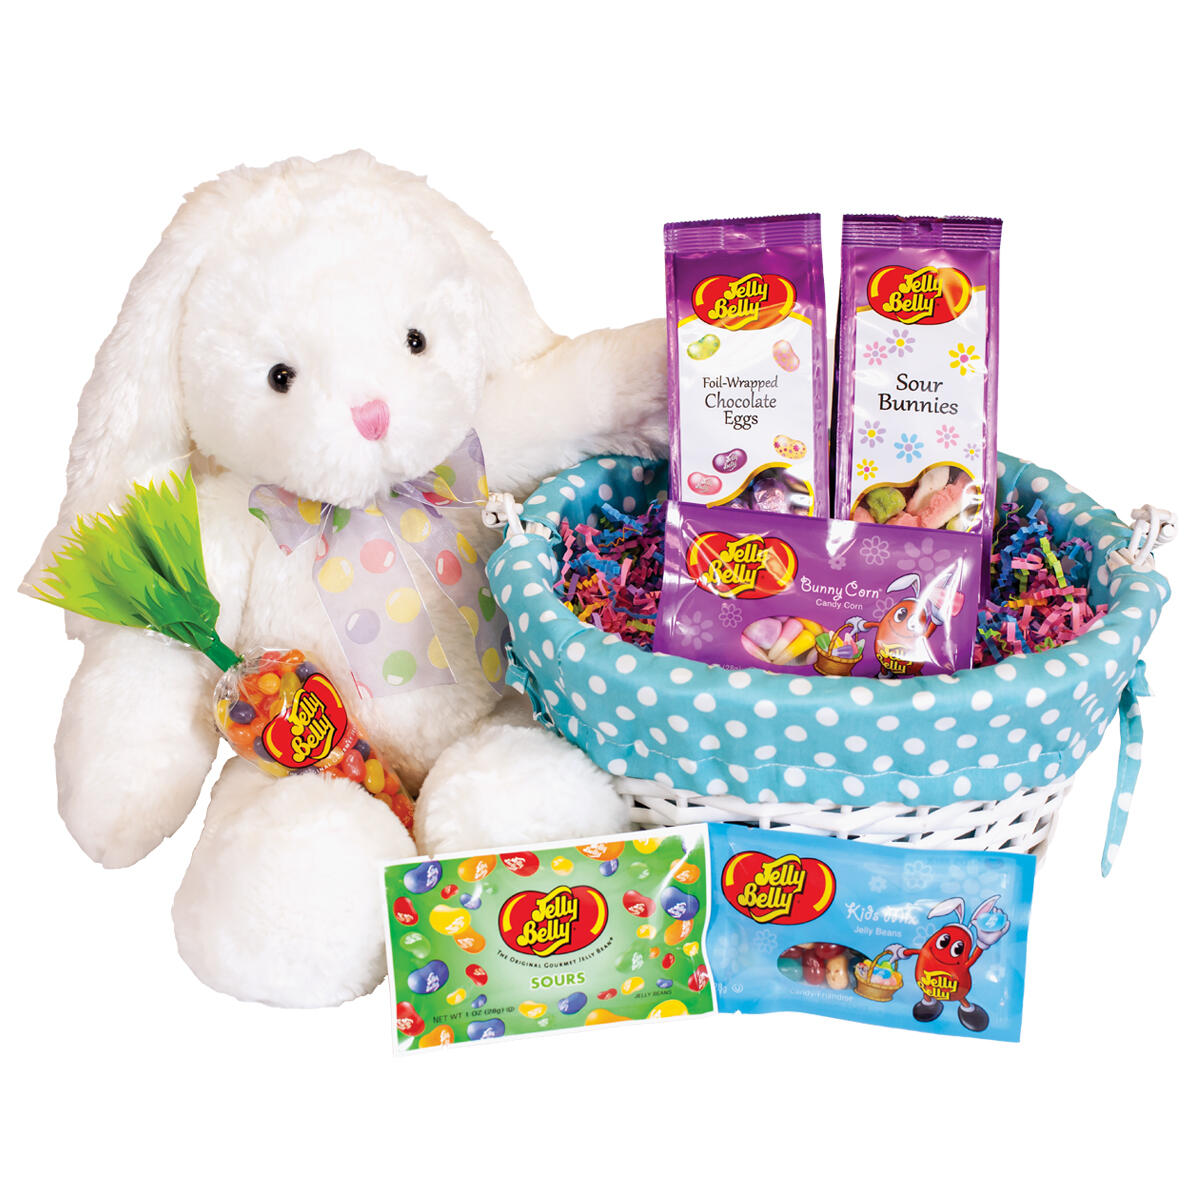 Springtime Sweets & Treats Easter Basket - Blue